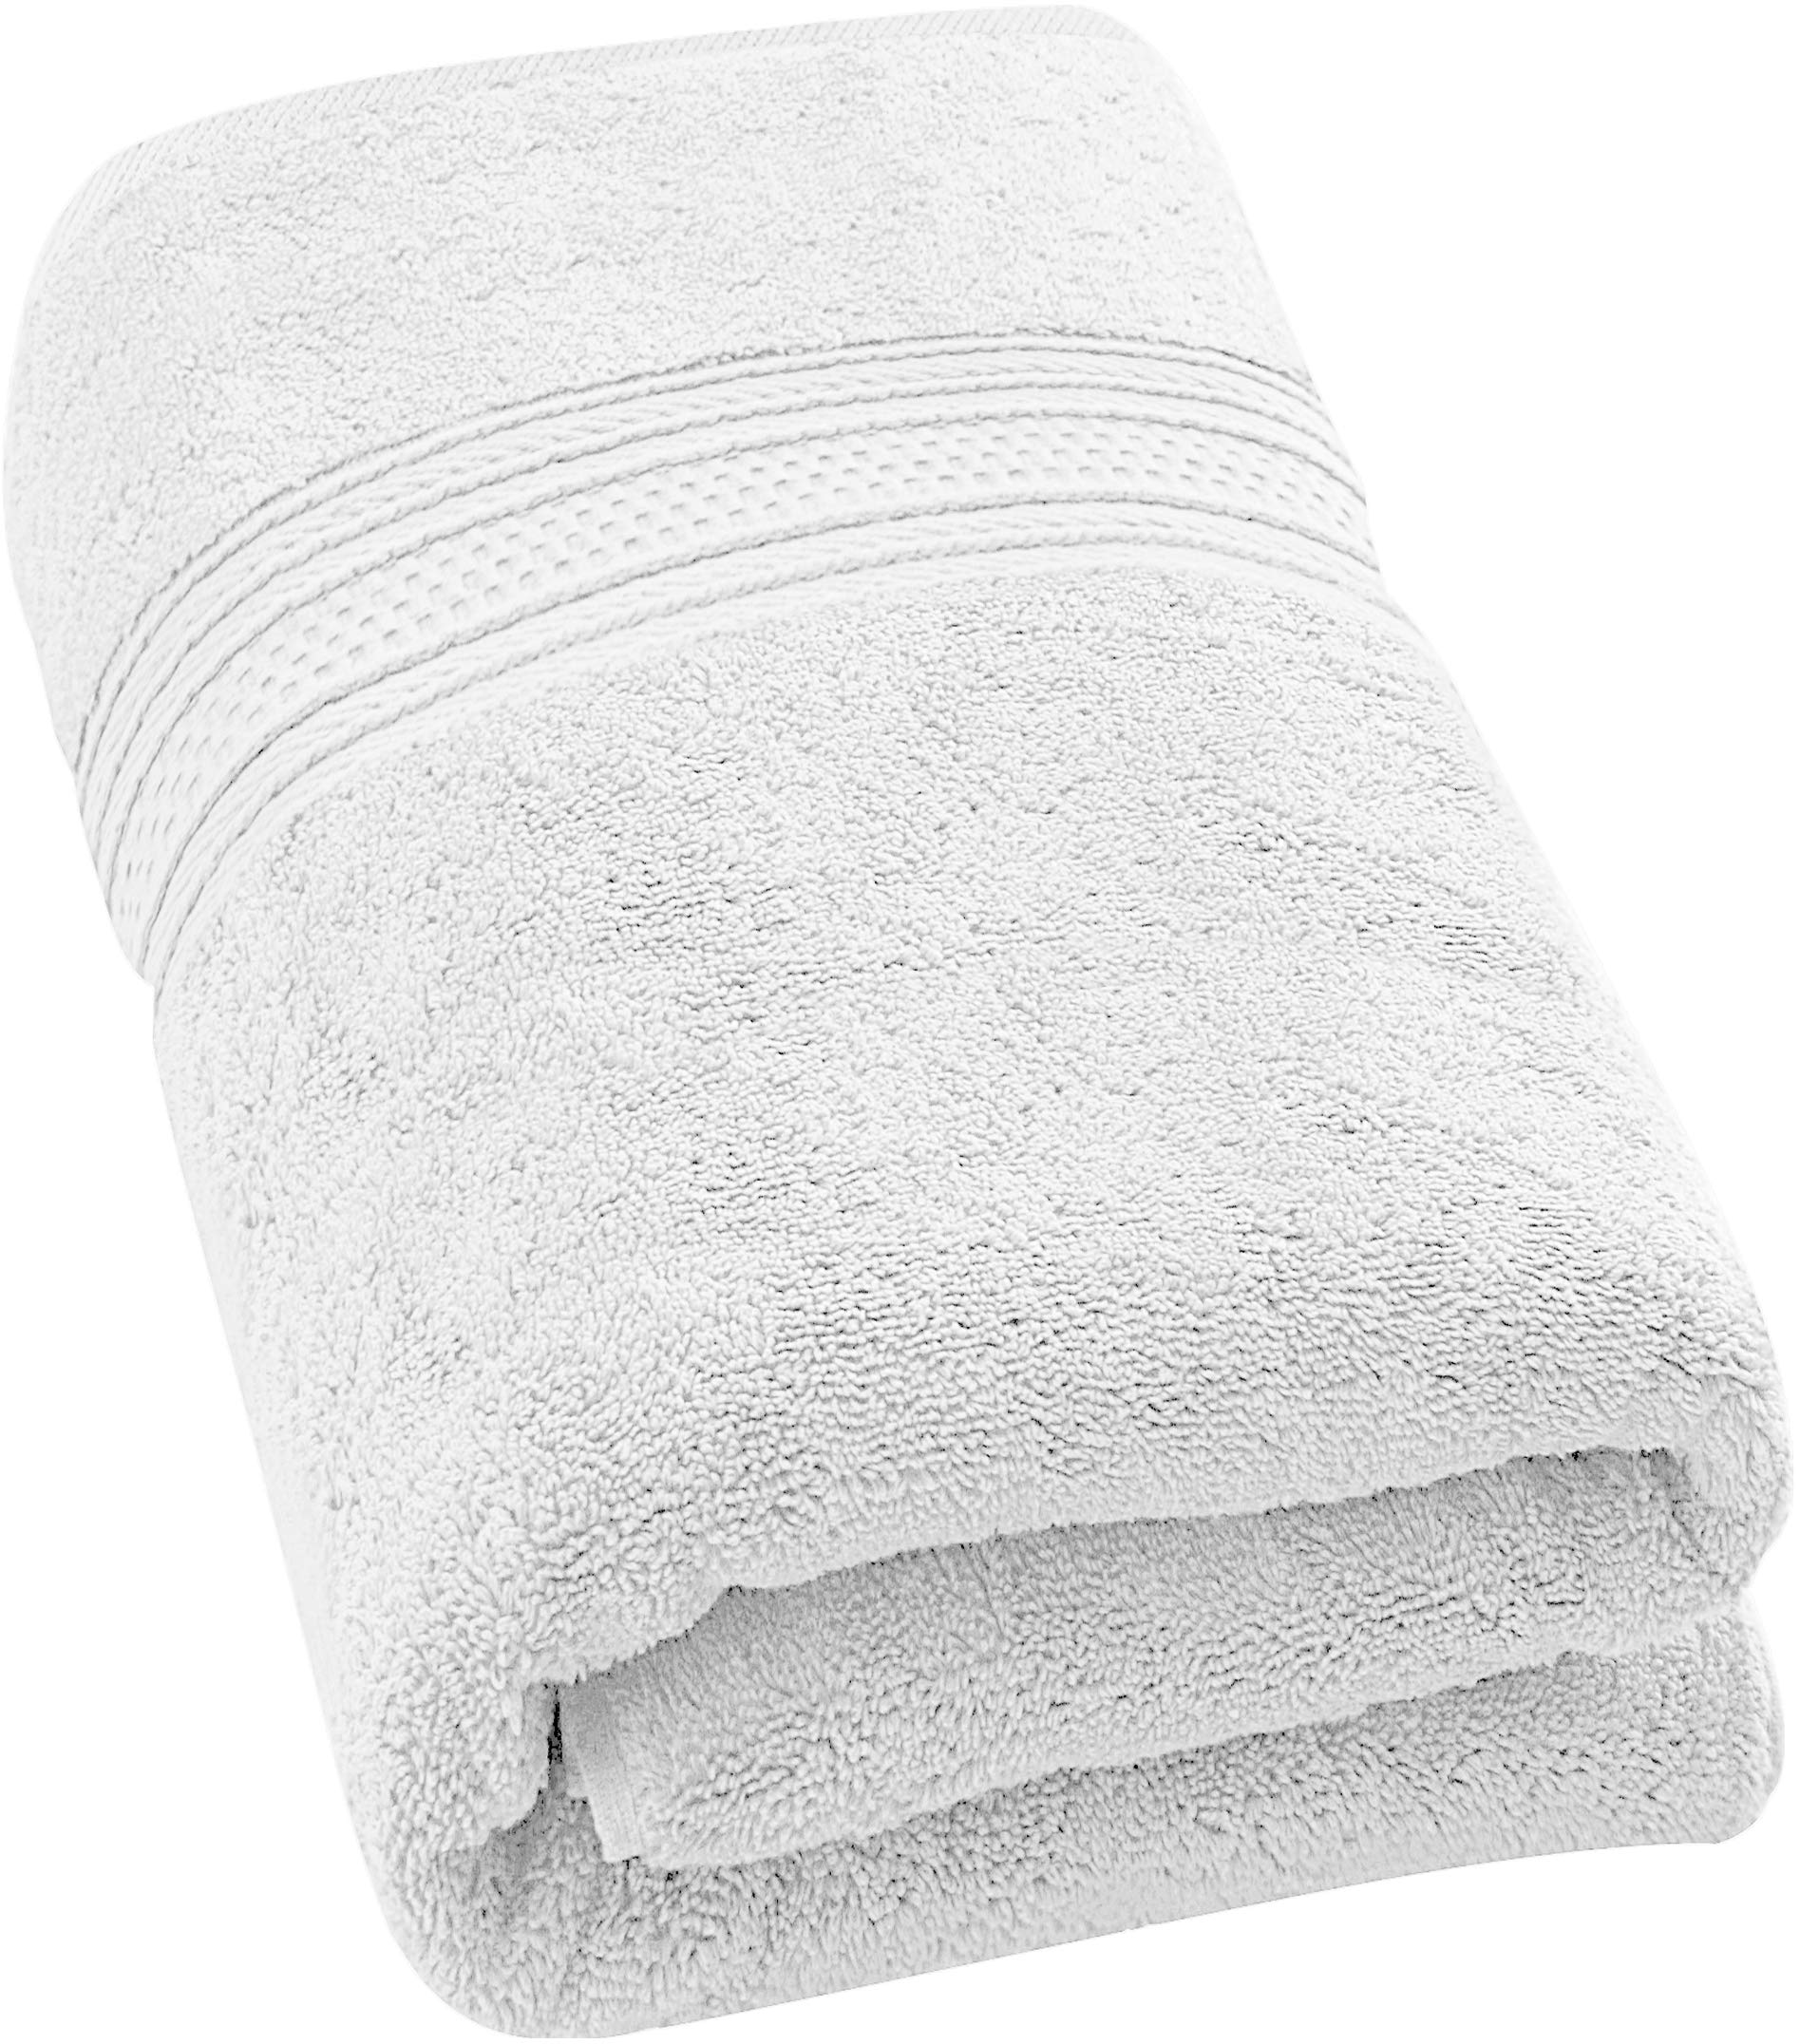 Utopia Towels Pack of 24-700 GSM Premium Cotton Bath Towel (White, 27 x 54 Inches) Luxury Bath Sheet Perfect for Home, Bathrooms, Pool and Gym Ring-Spun Cotton (White)